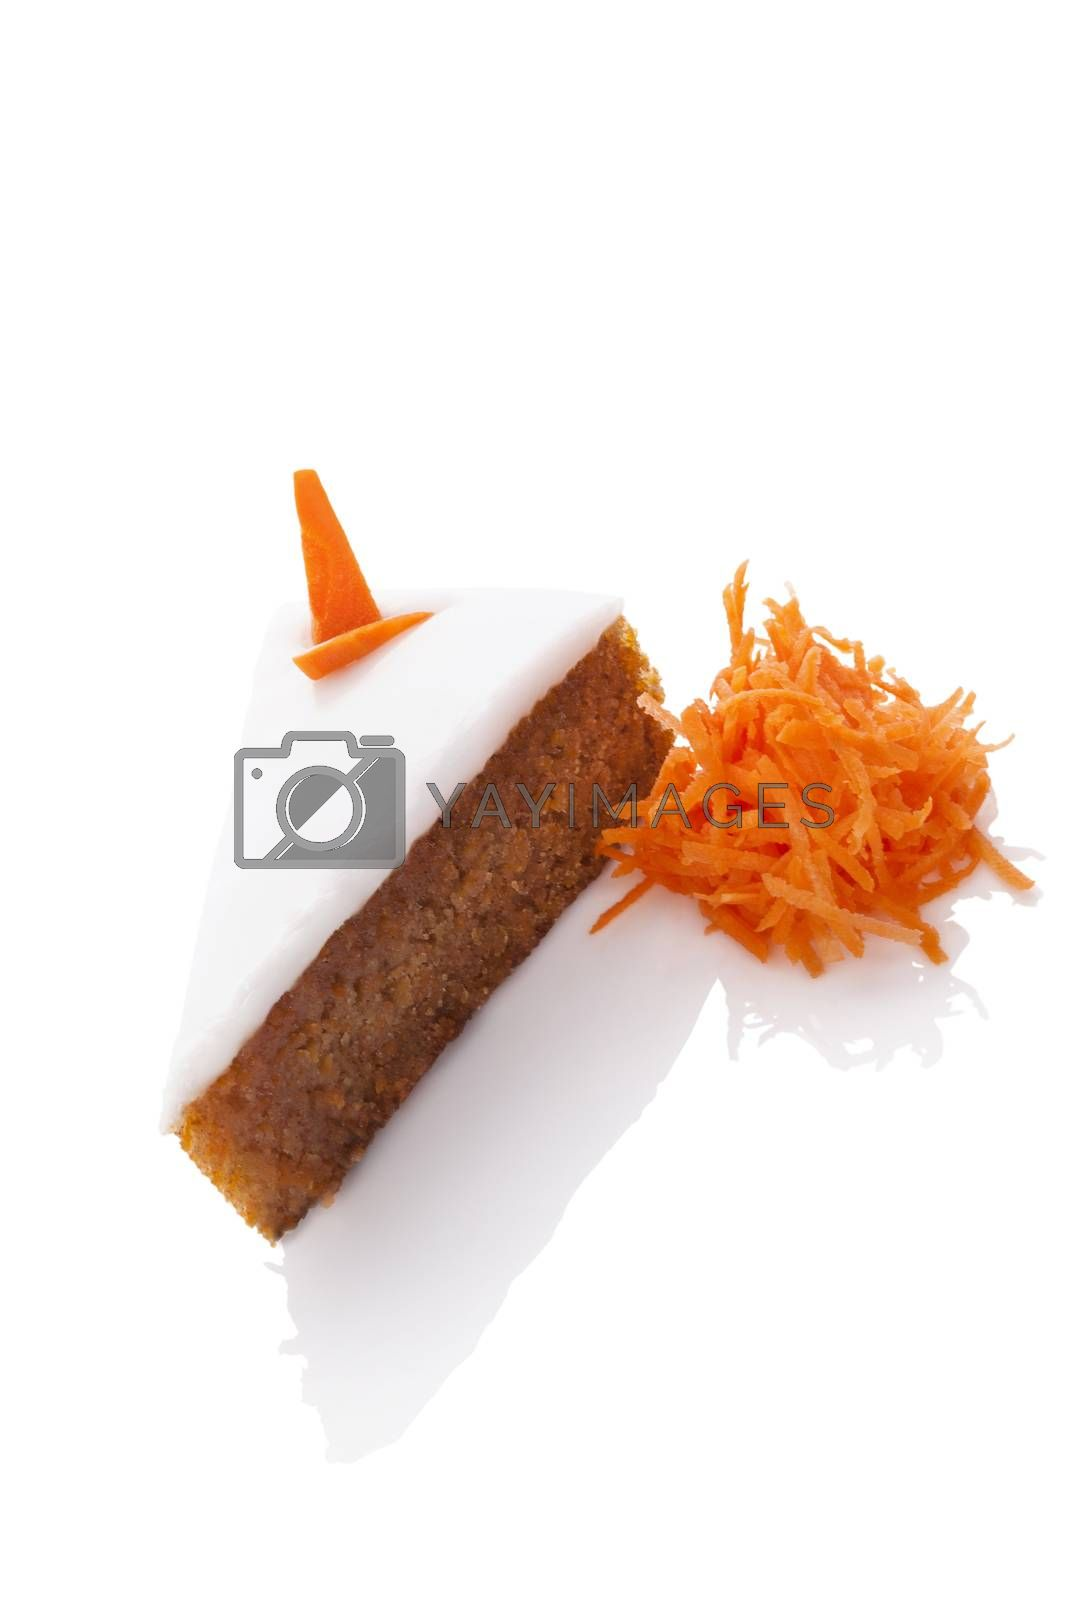 Delicious carrot cake on grated carrots isolated on white background. Culinary sweet dessert.